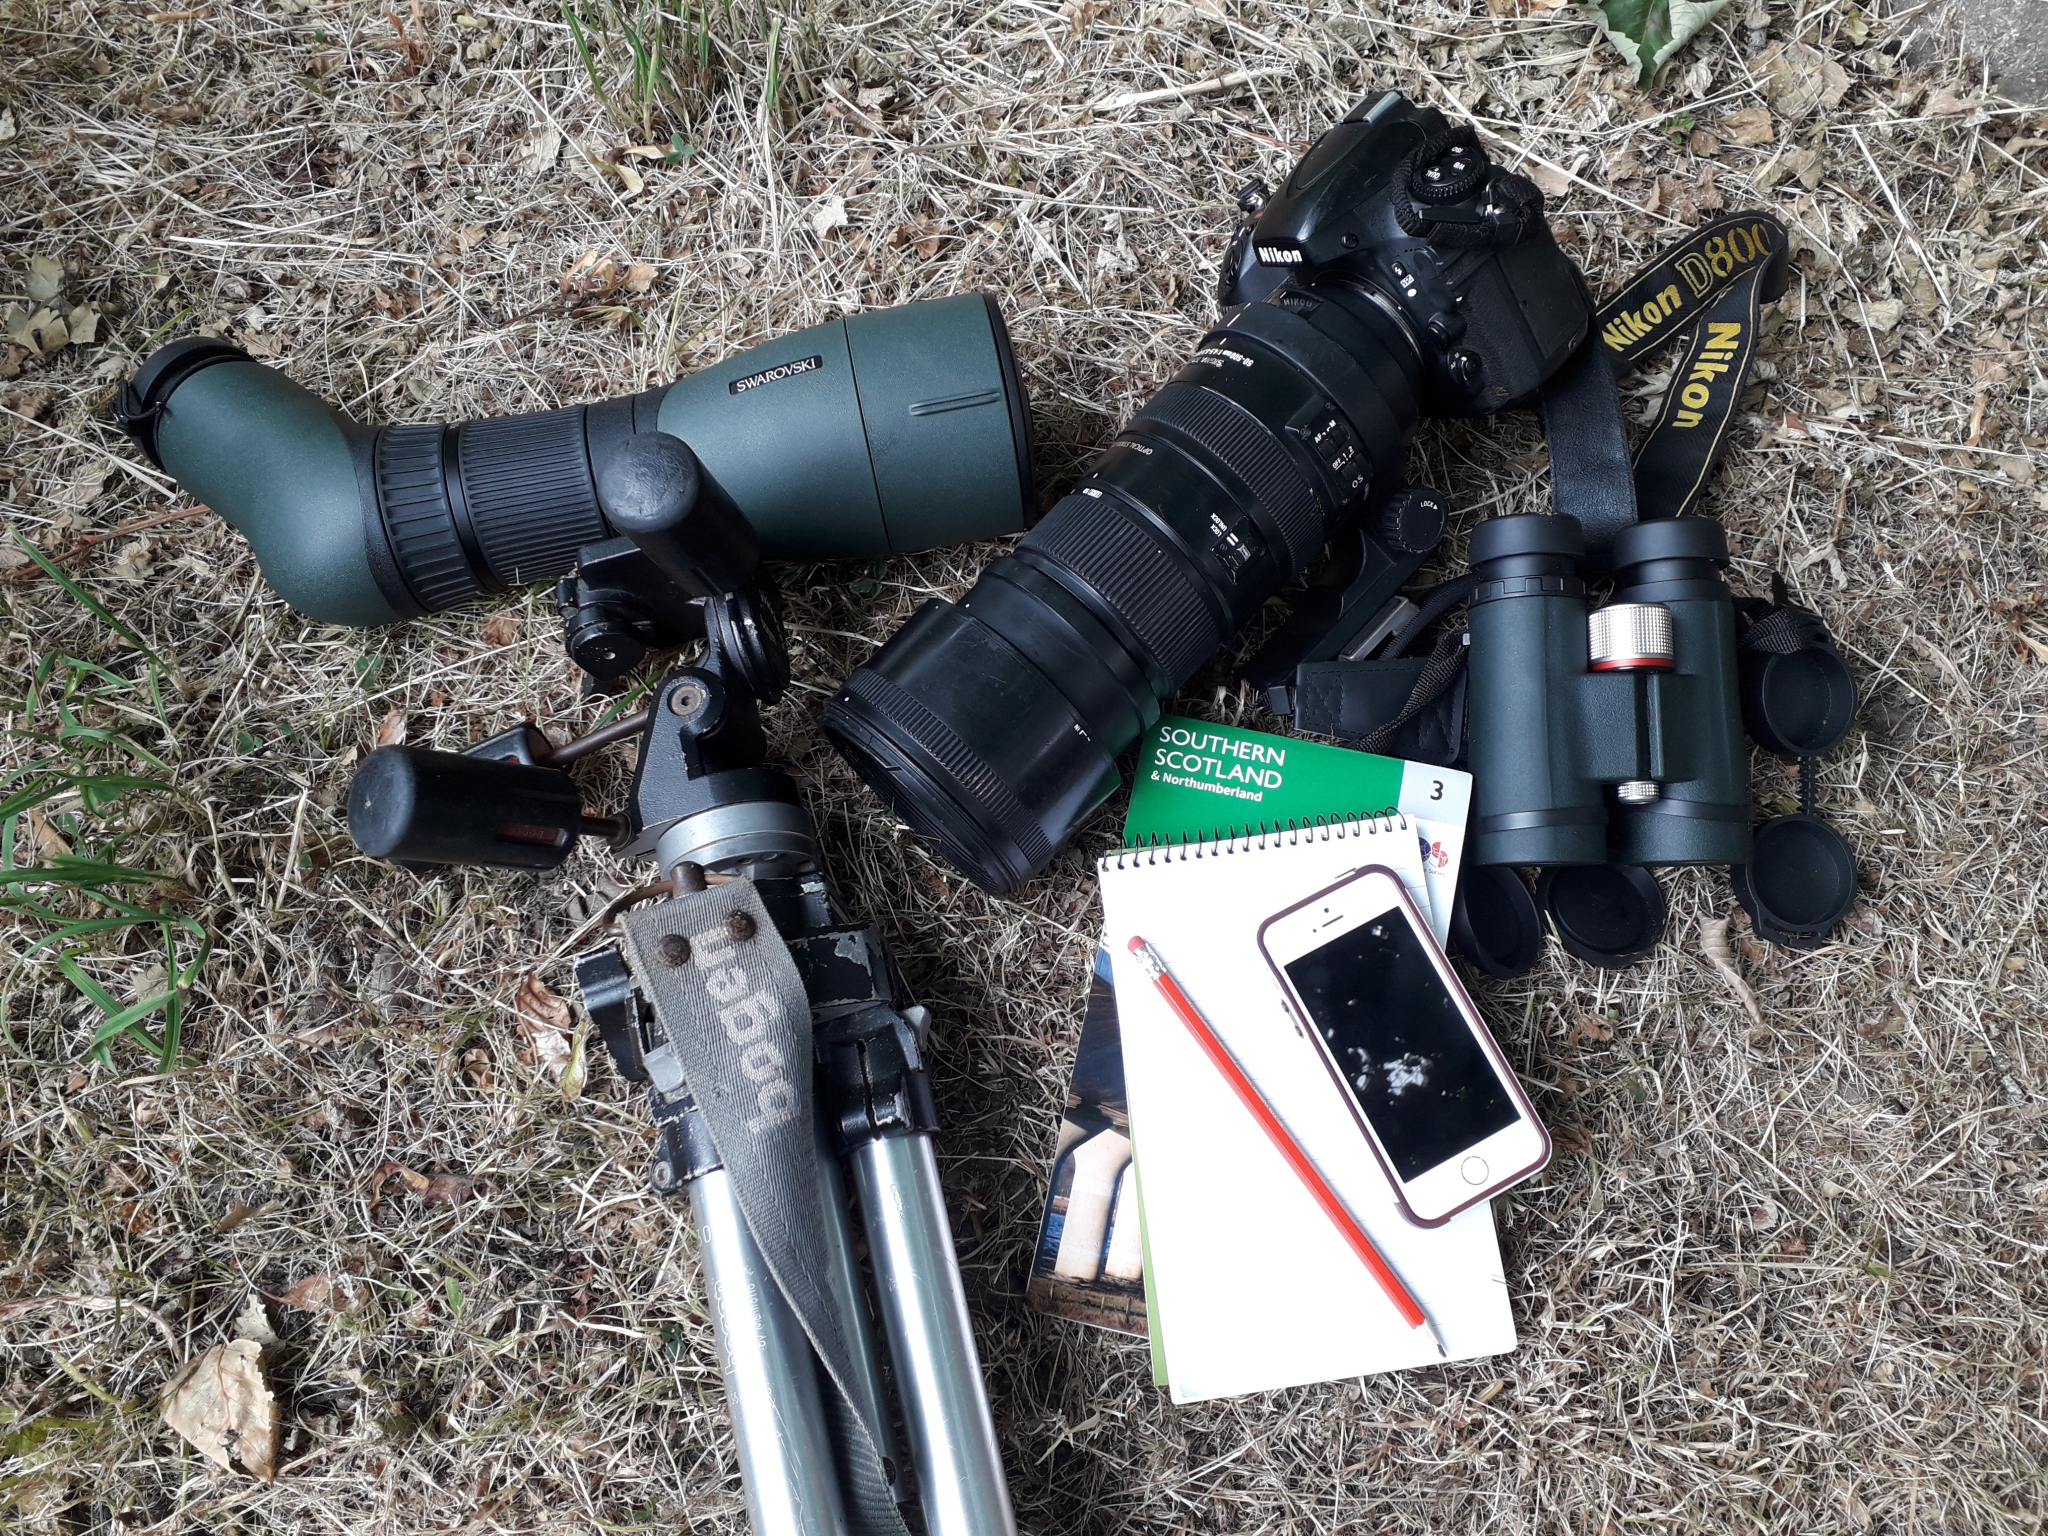 A selection of eagle spotting kit including binoculars and note pad